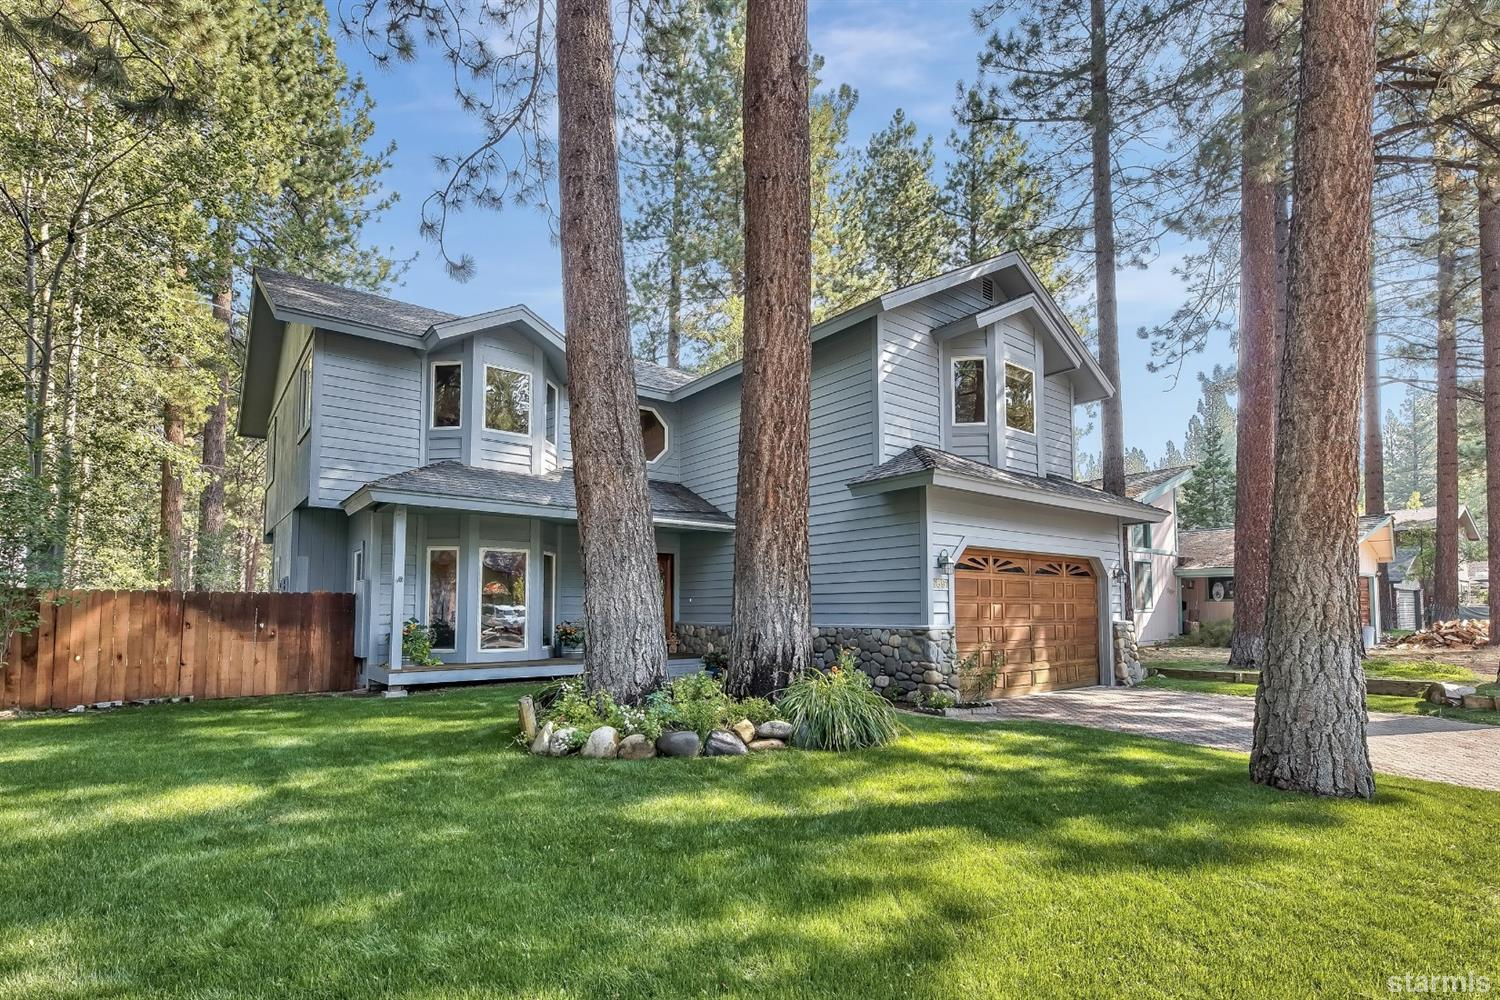 Image for 2891 Springwood Drive, South Lake Tahoe, CA 96150